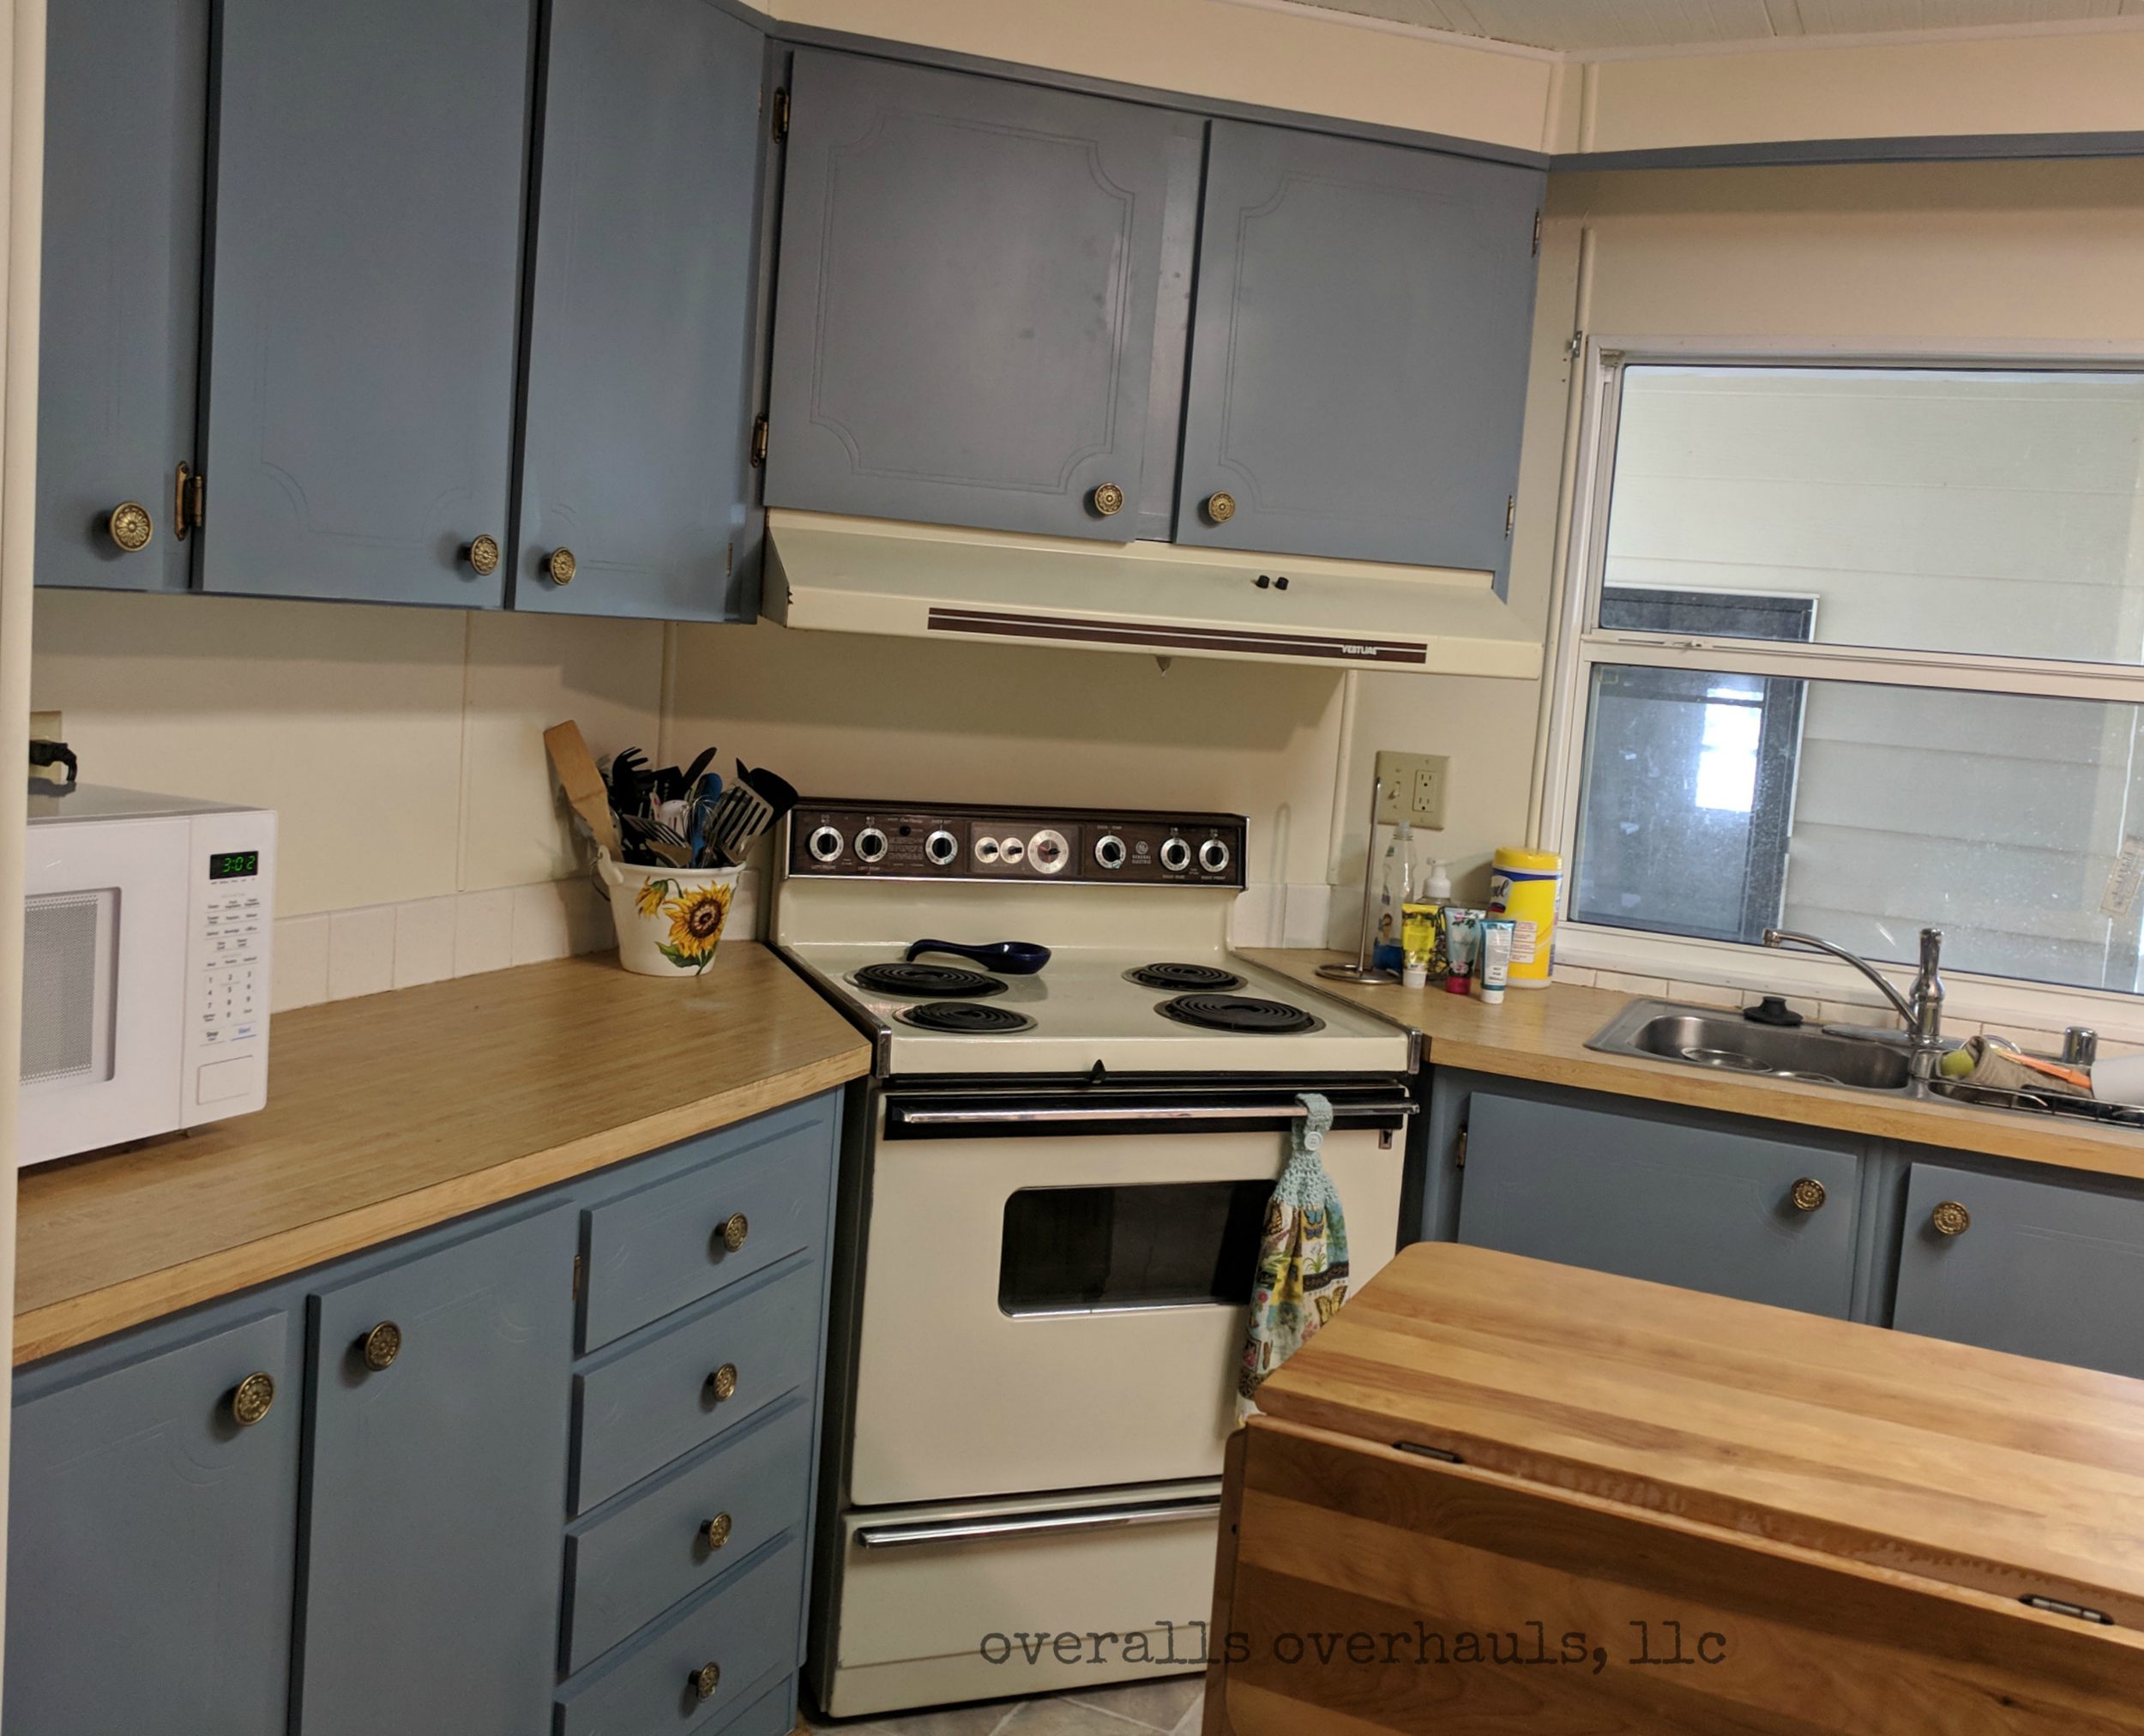 donna kitchen done 1.png